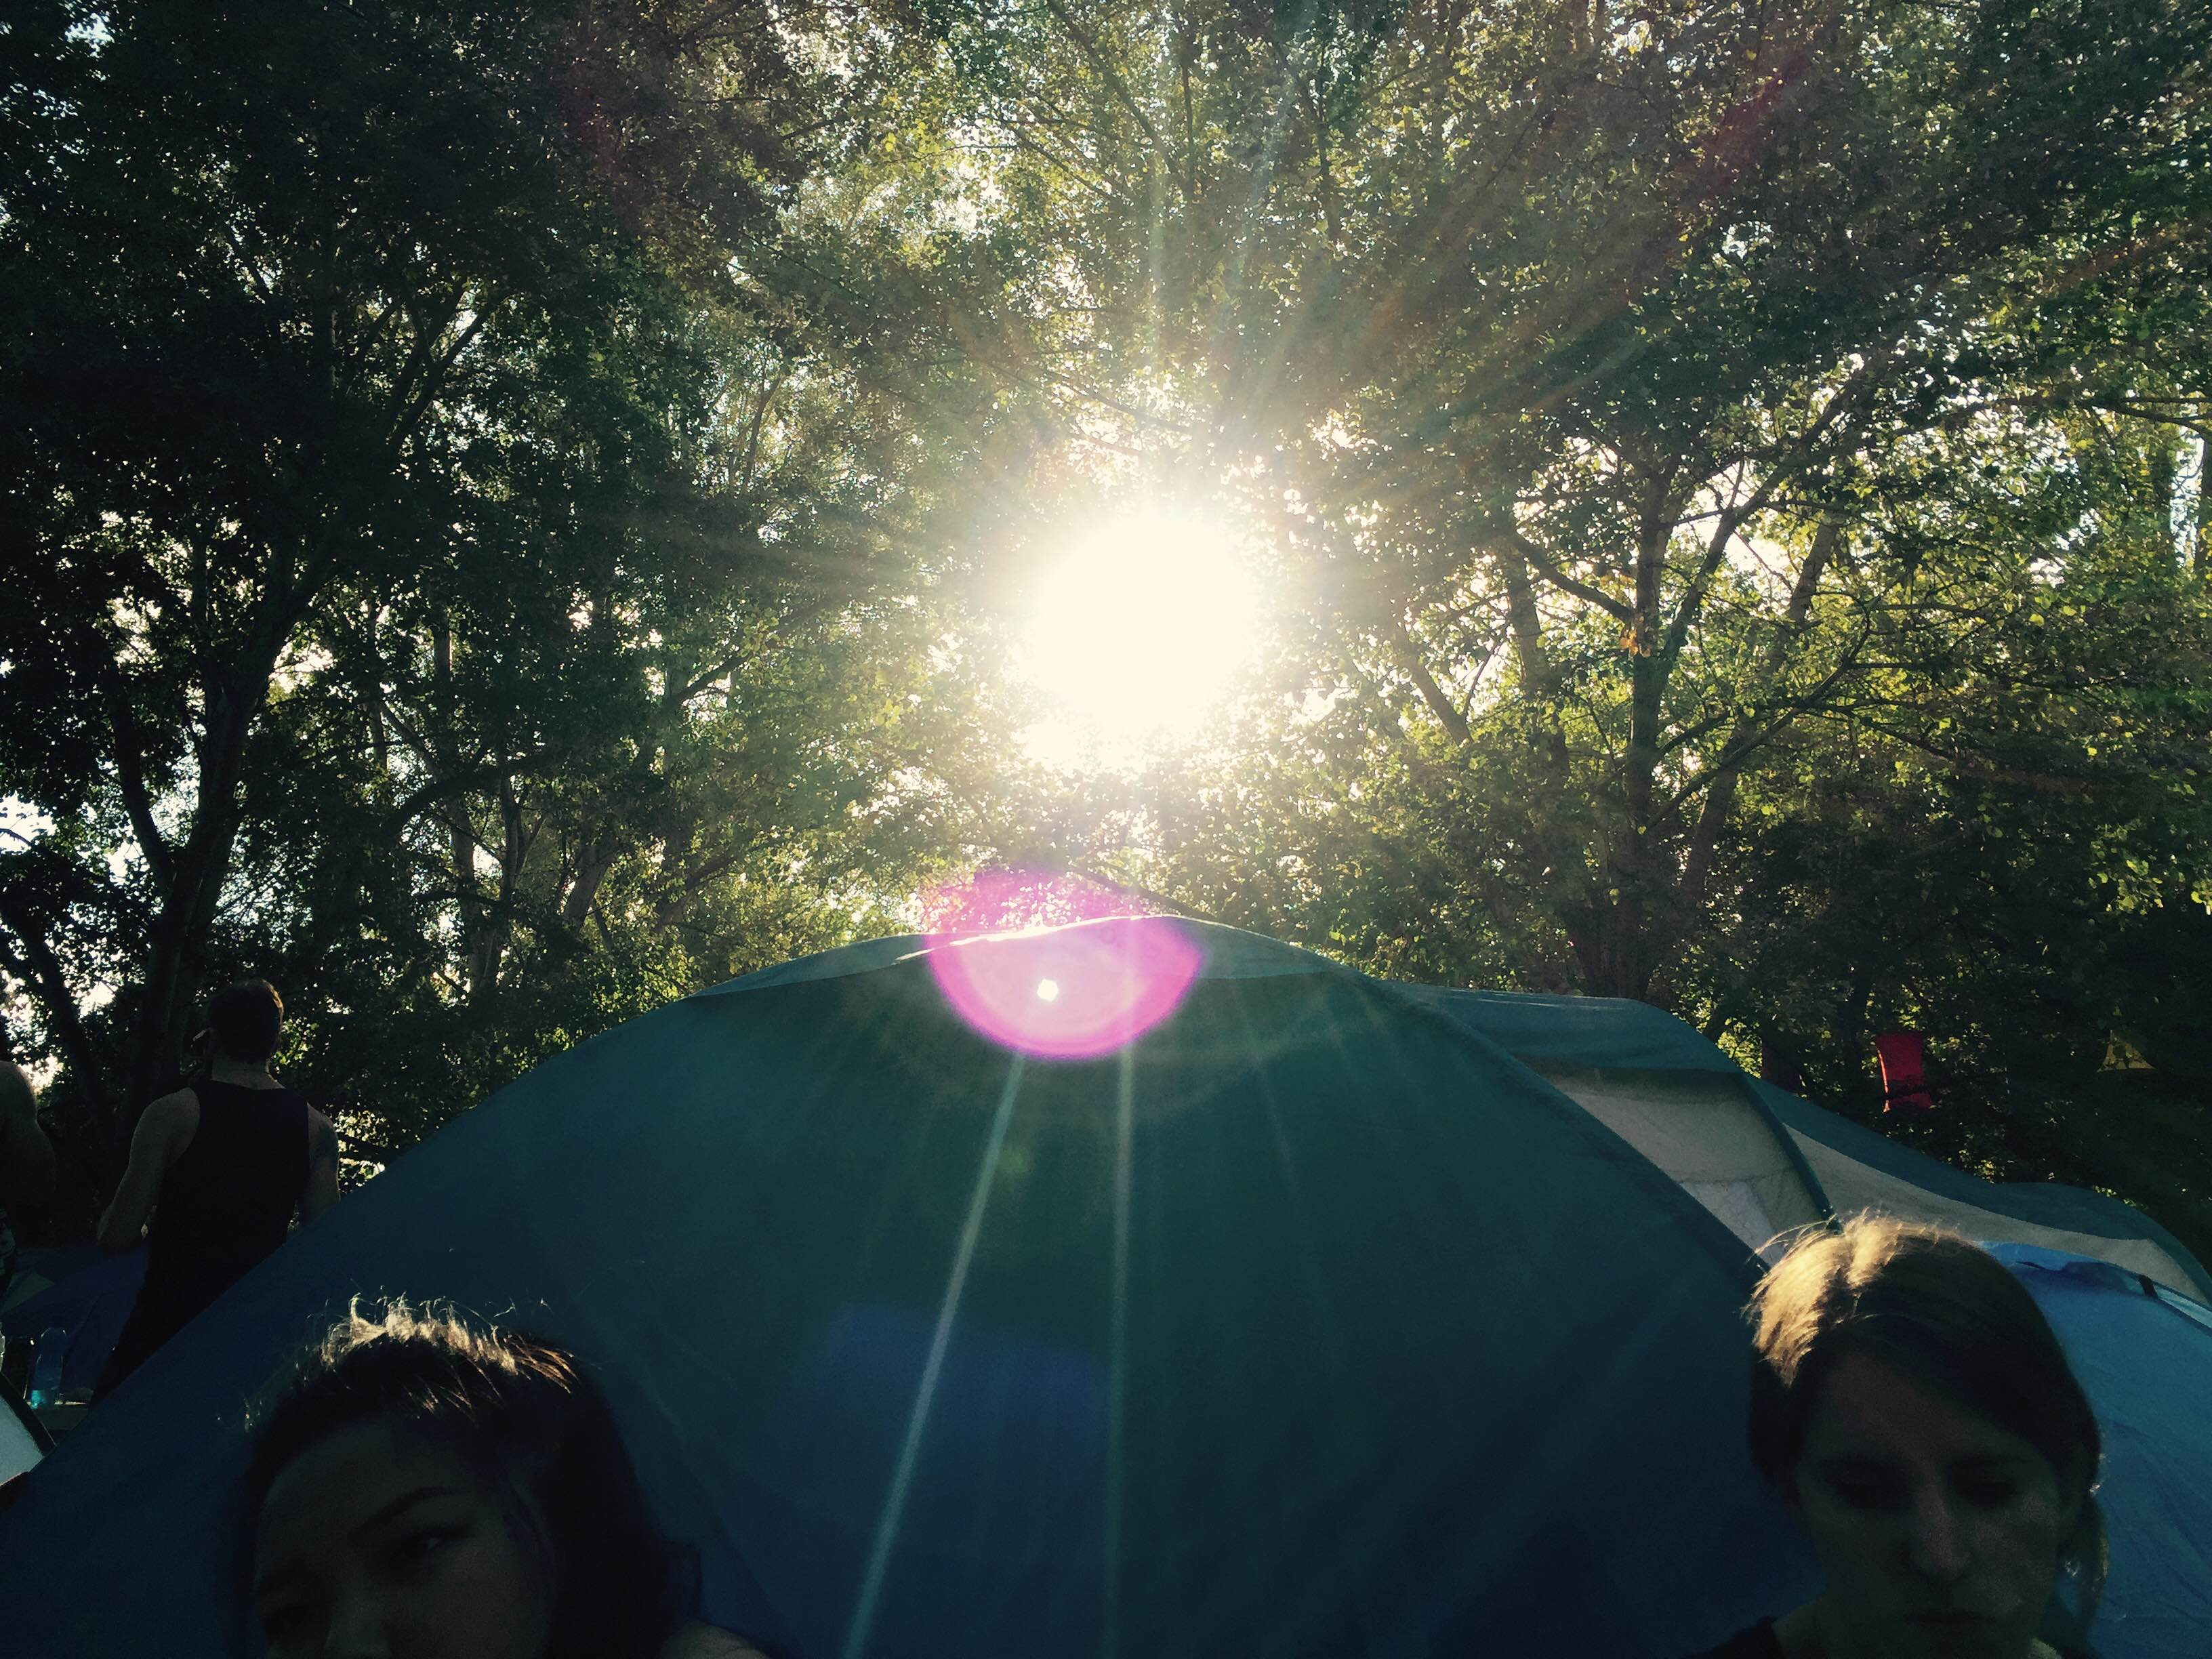 sziget camping